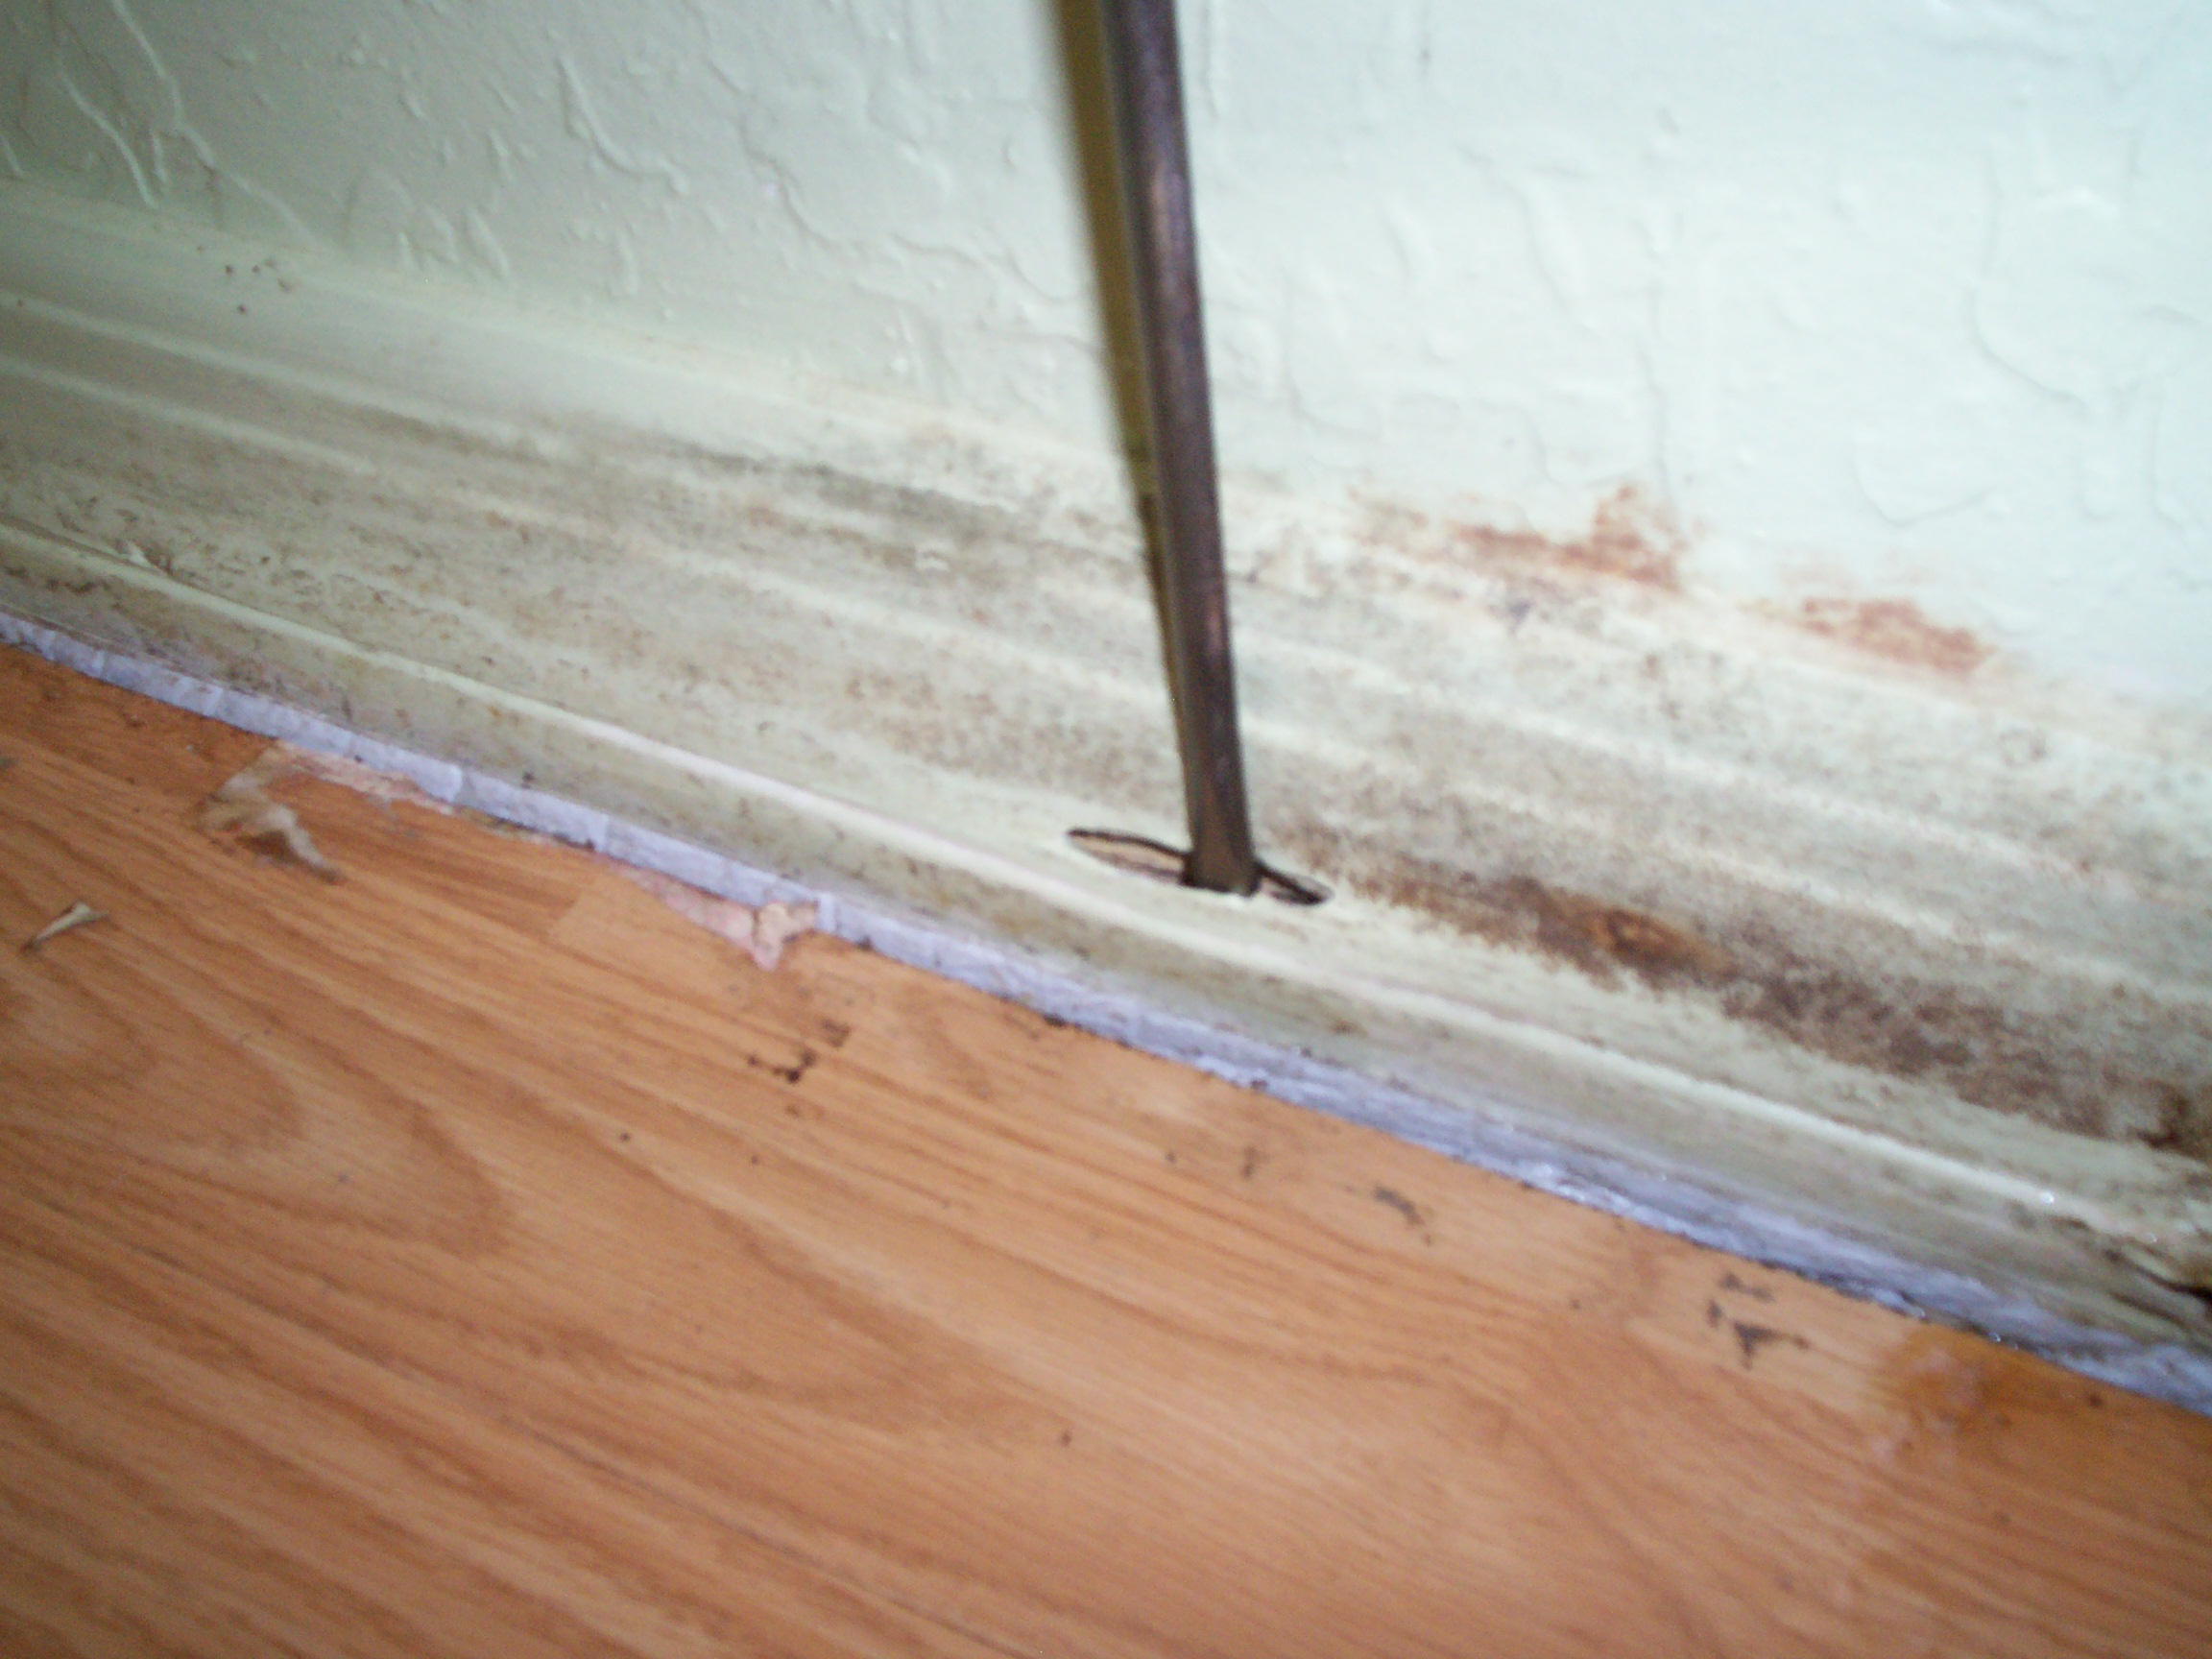 Termite Inspector Damage Why Inspectors Tap Wood Pest